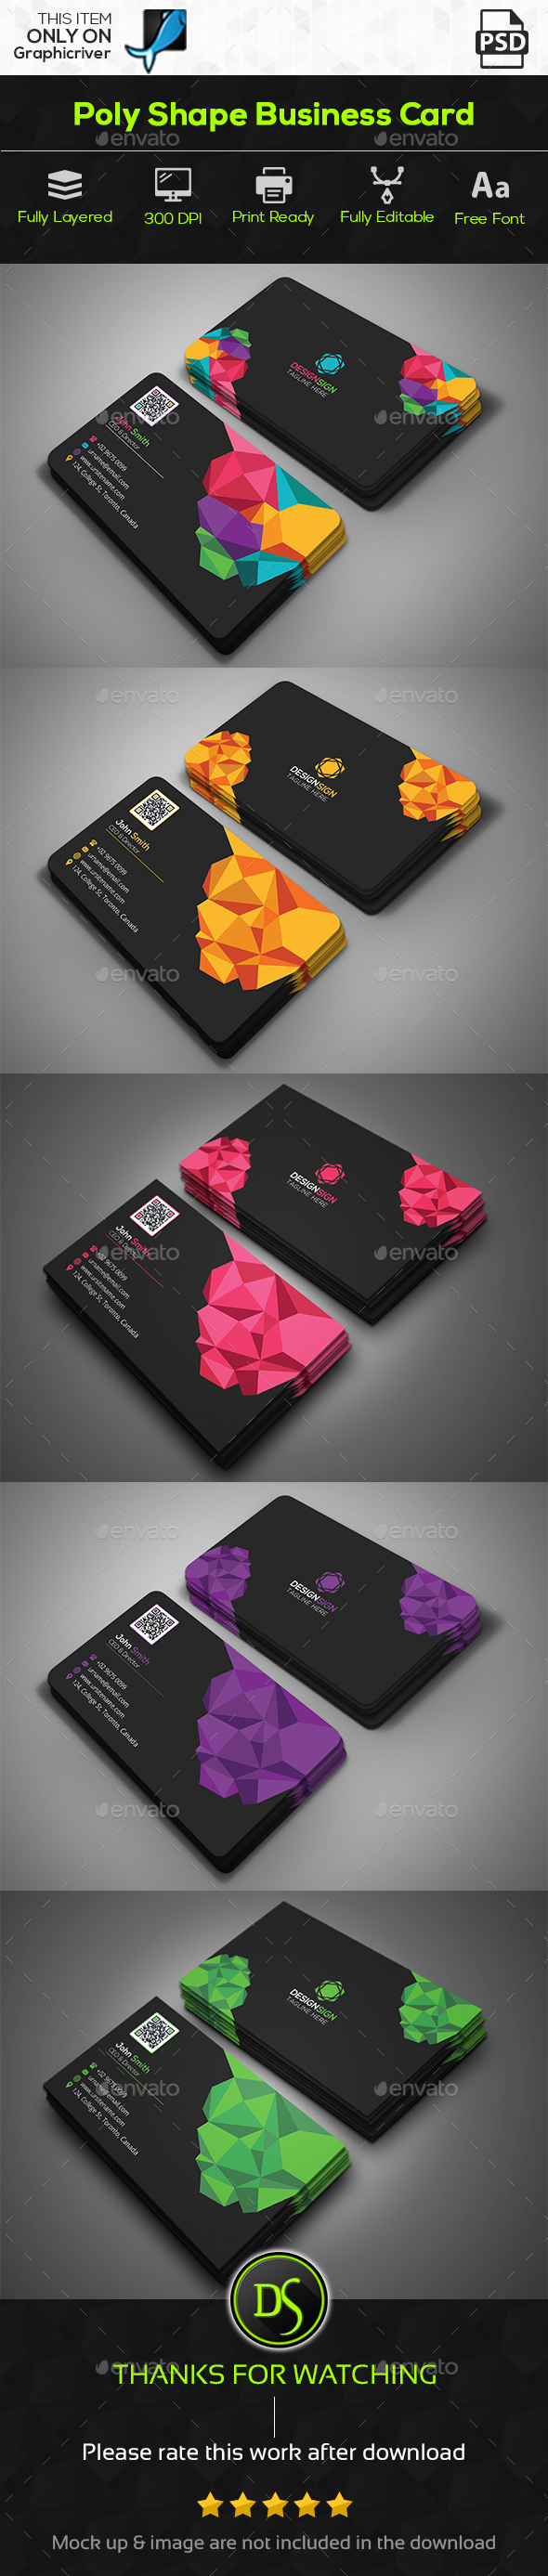 Poly shape business card by designsign graphicriver poly shape business card creative business cards colourmoves